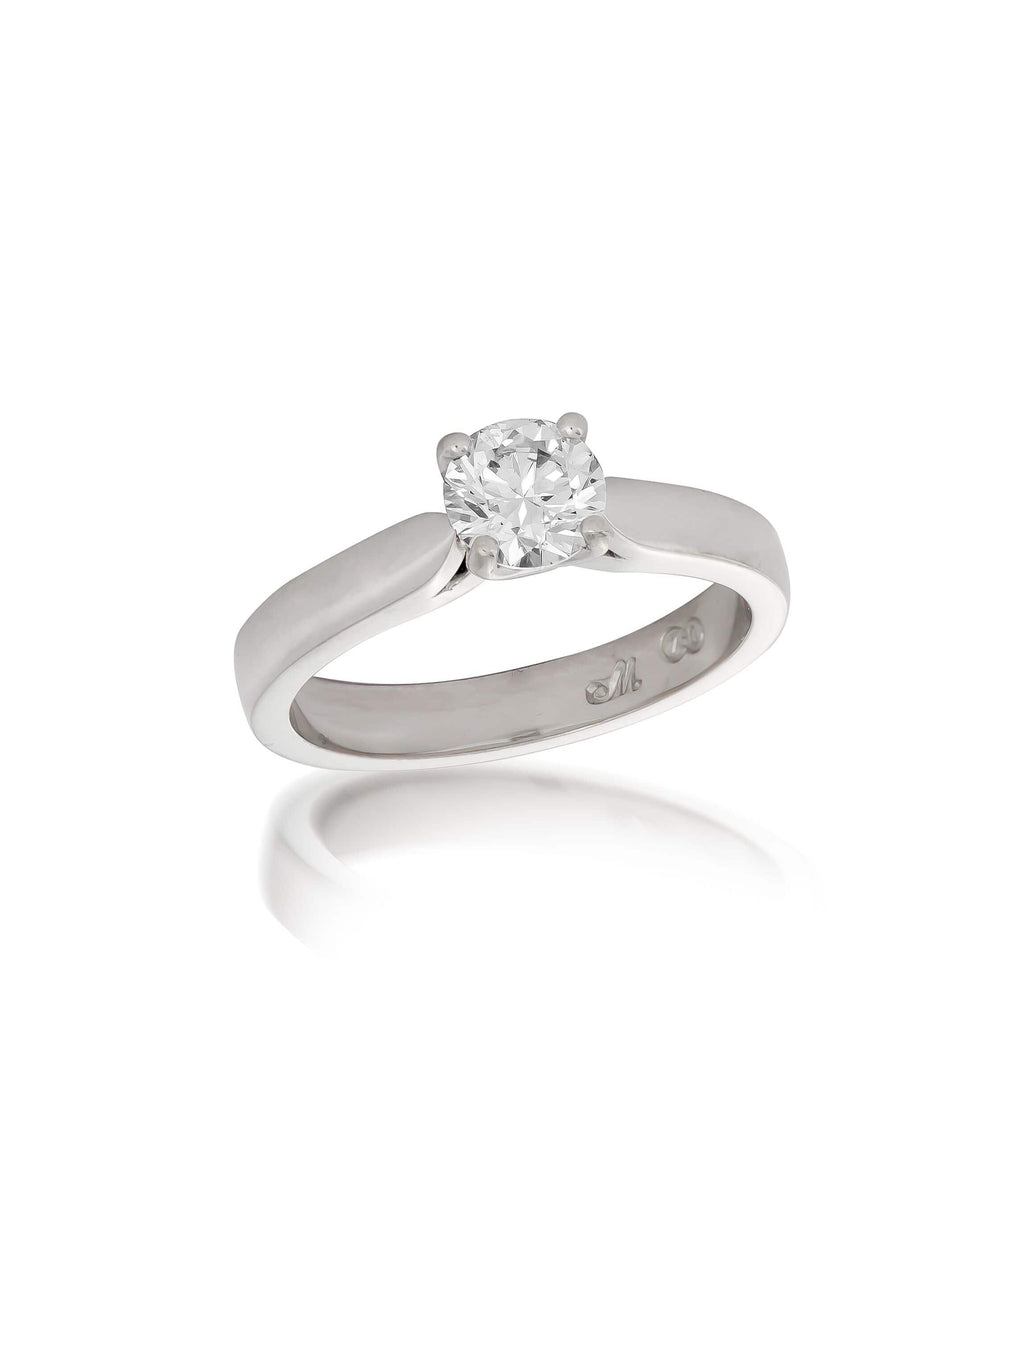 Signature Round Brilliant Cut Solitaire Diamond Ring